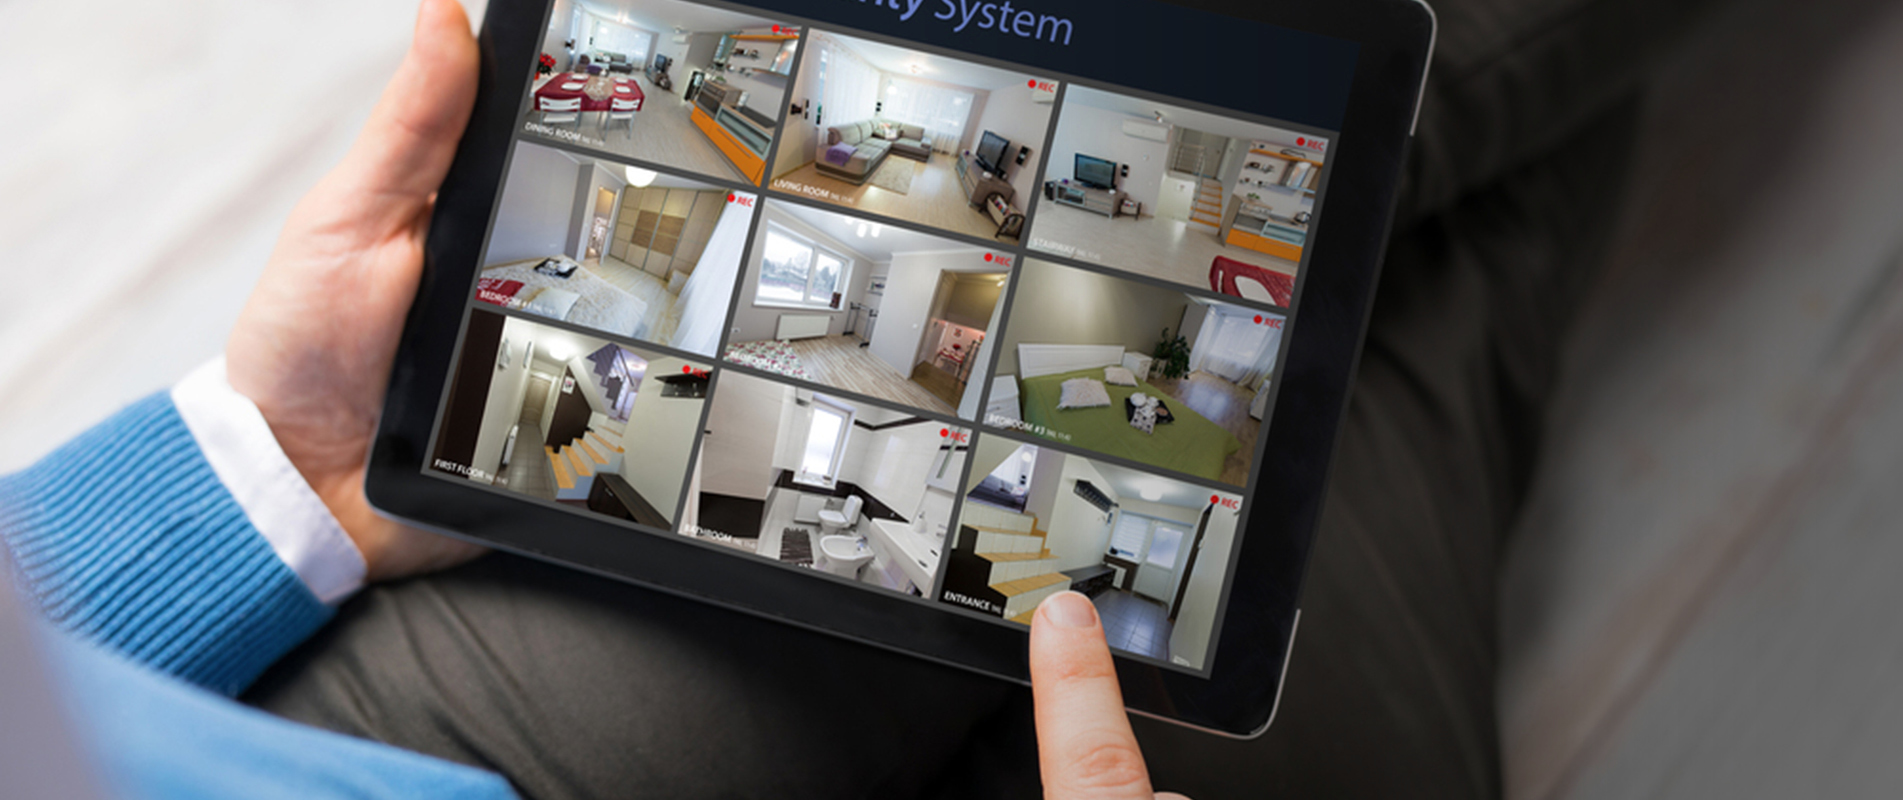 home cctv system on ipad